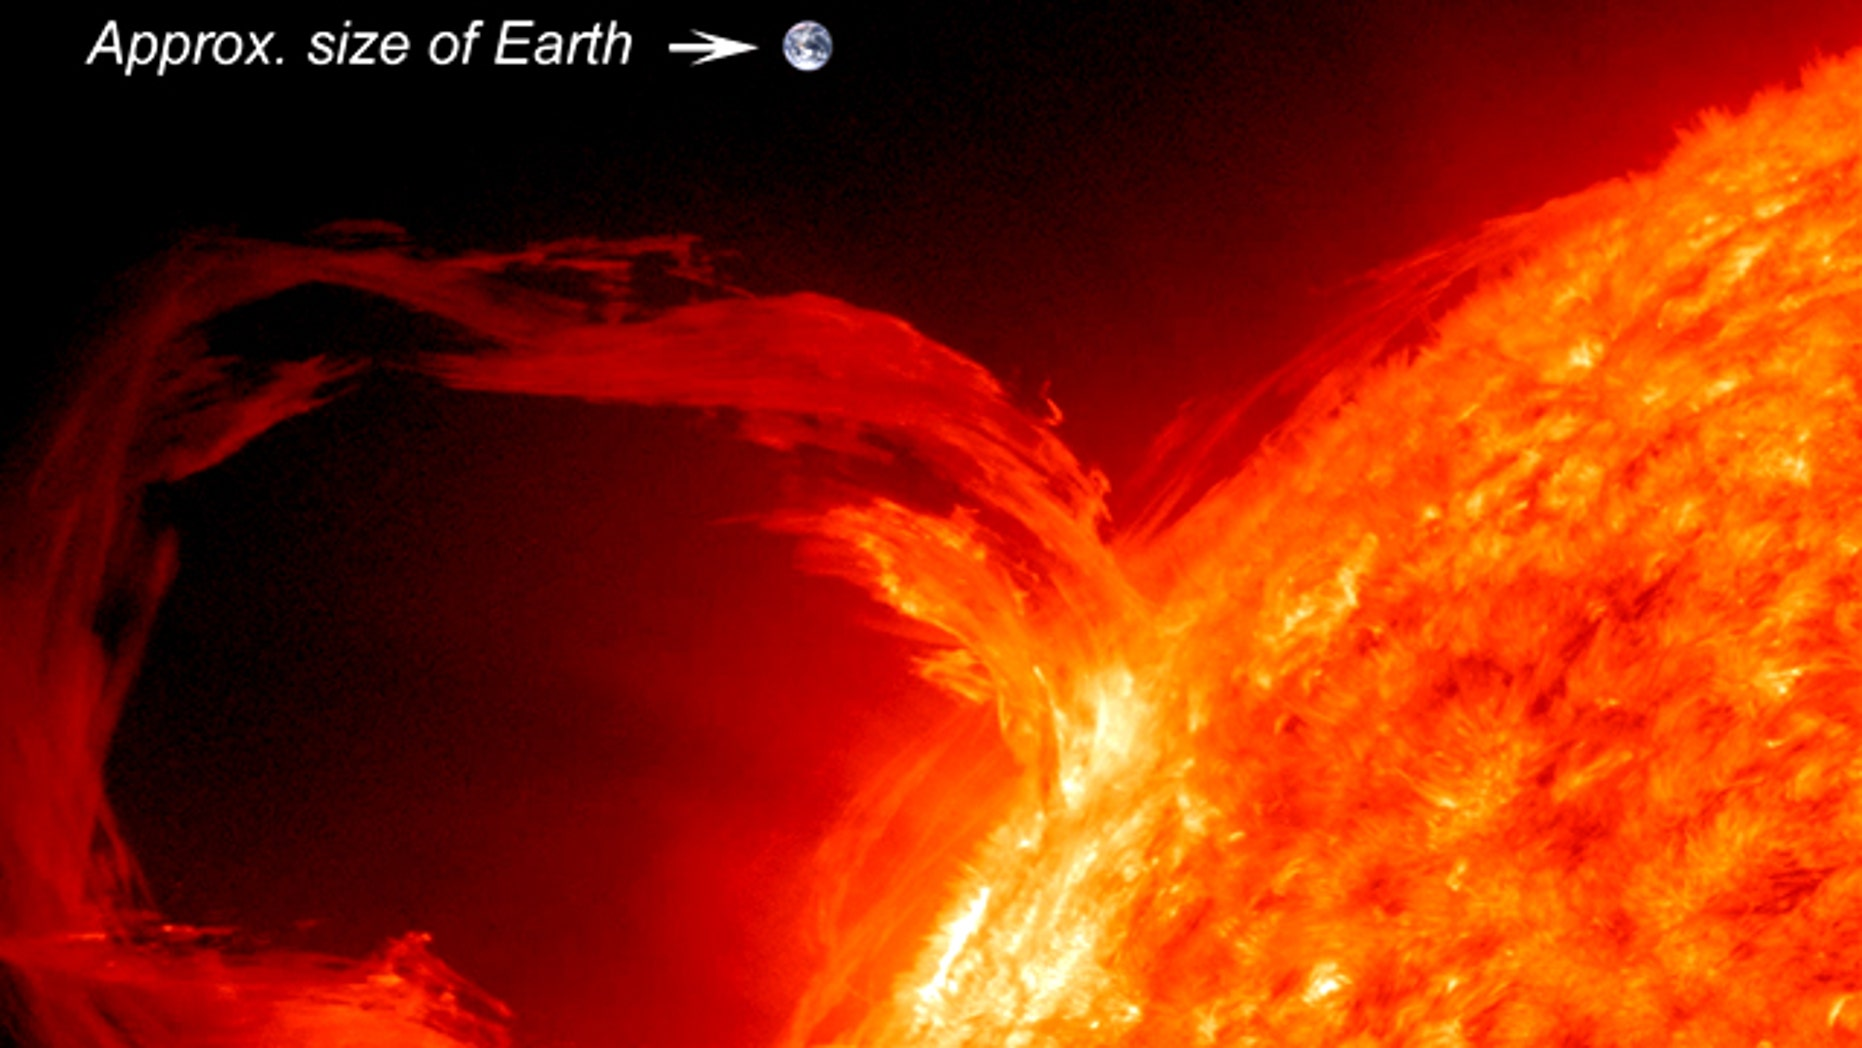 One of the first images taken by SDO and still a favorite: A solar eruptive prominence as seen in extreme UV light on March 30, 2010. The superimposed image of the Earth gives a sense of just how large these eruptions can be.